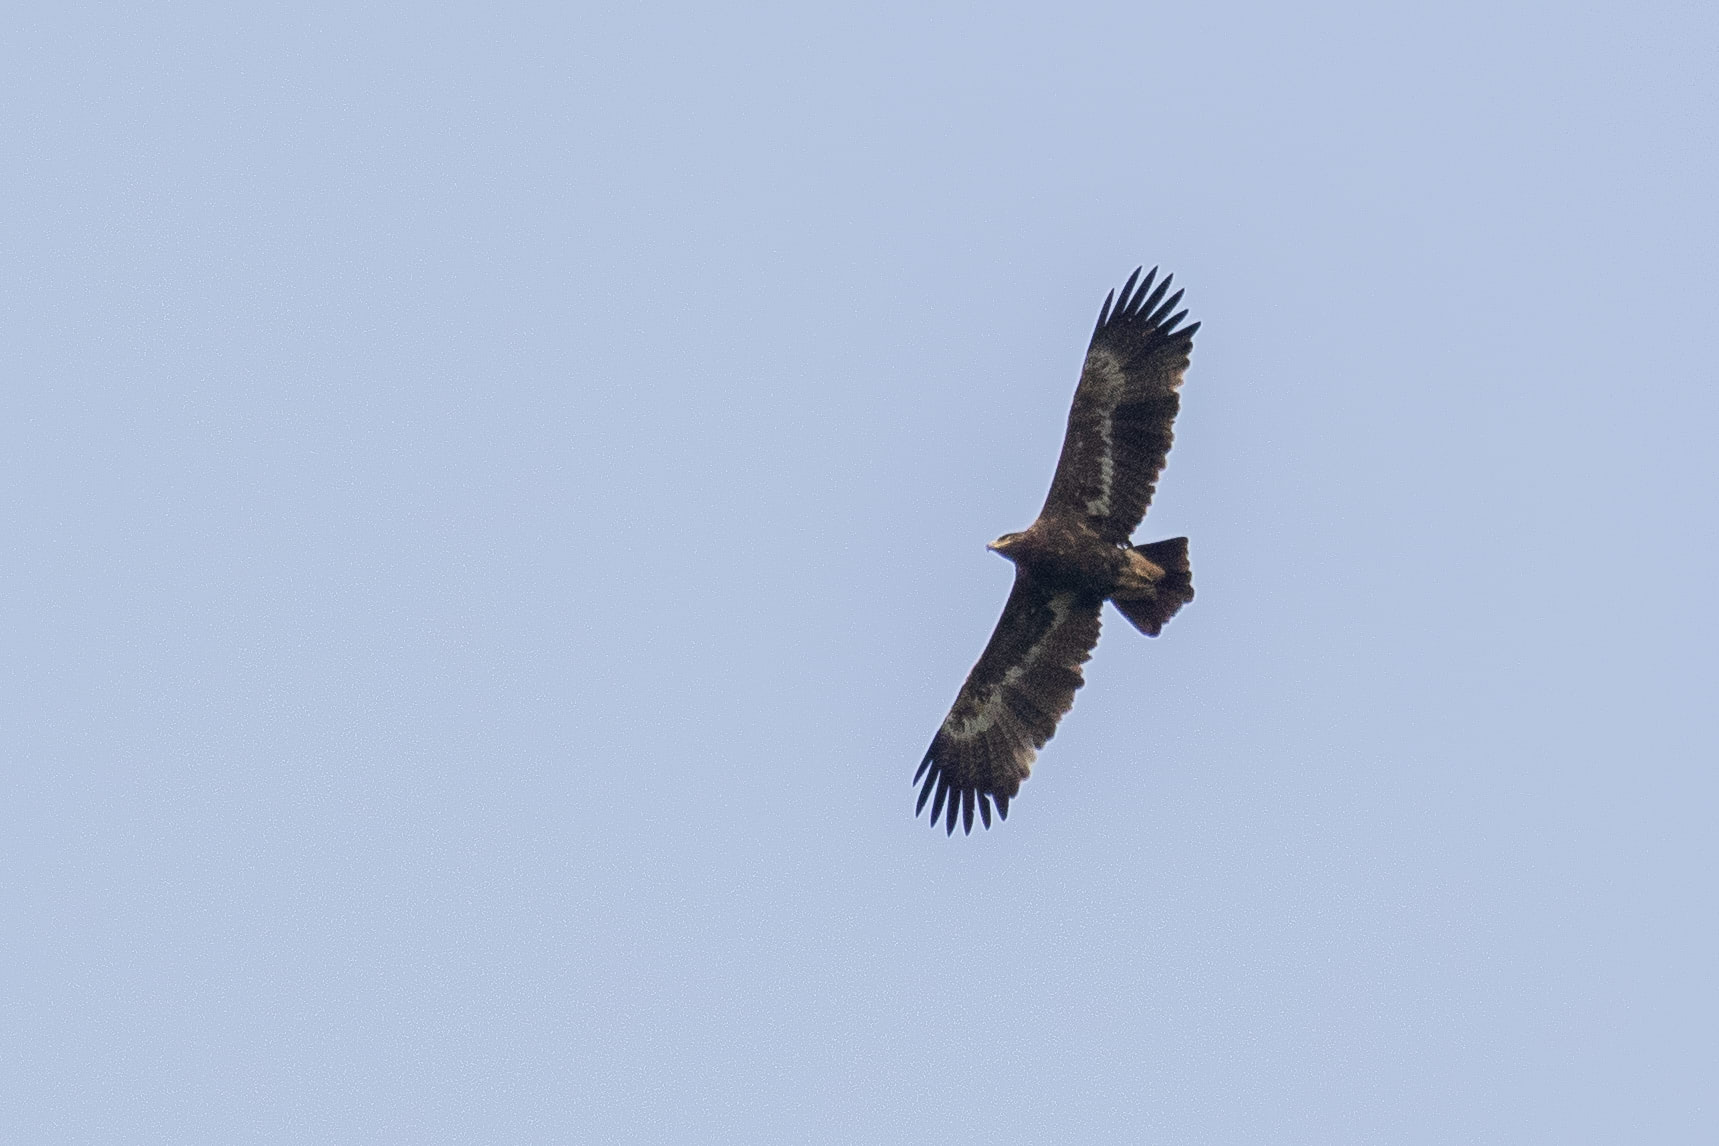 September 29th.  Immature Steppe Eagle, presumably a 4th calendar year or older.